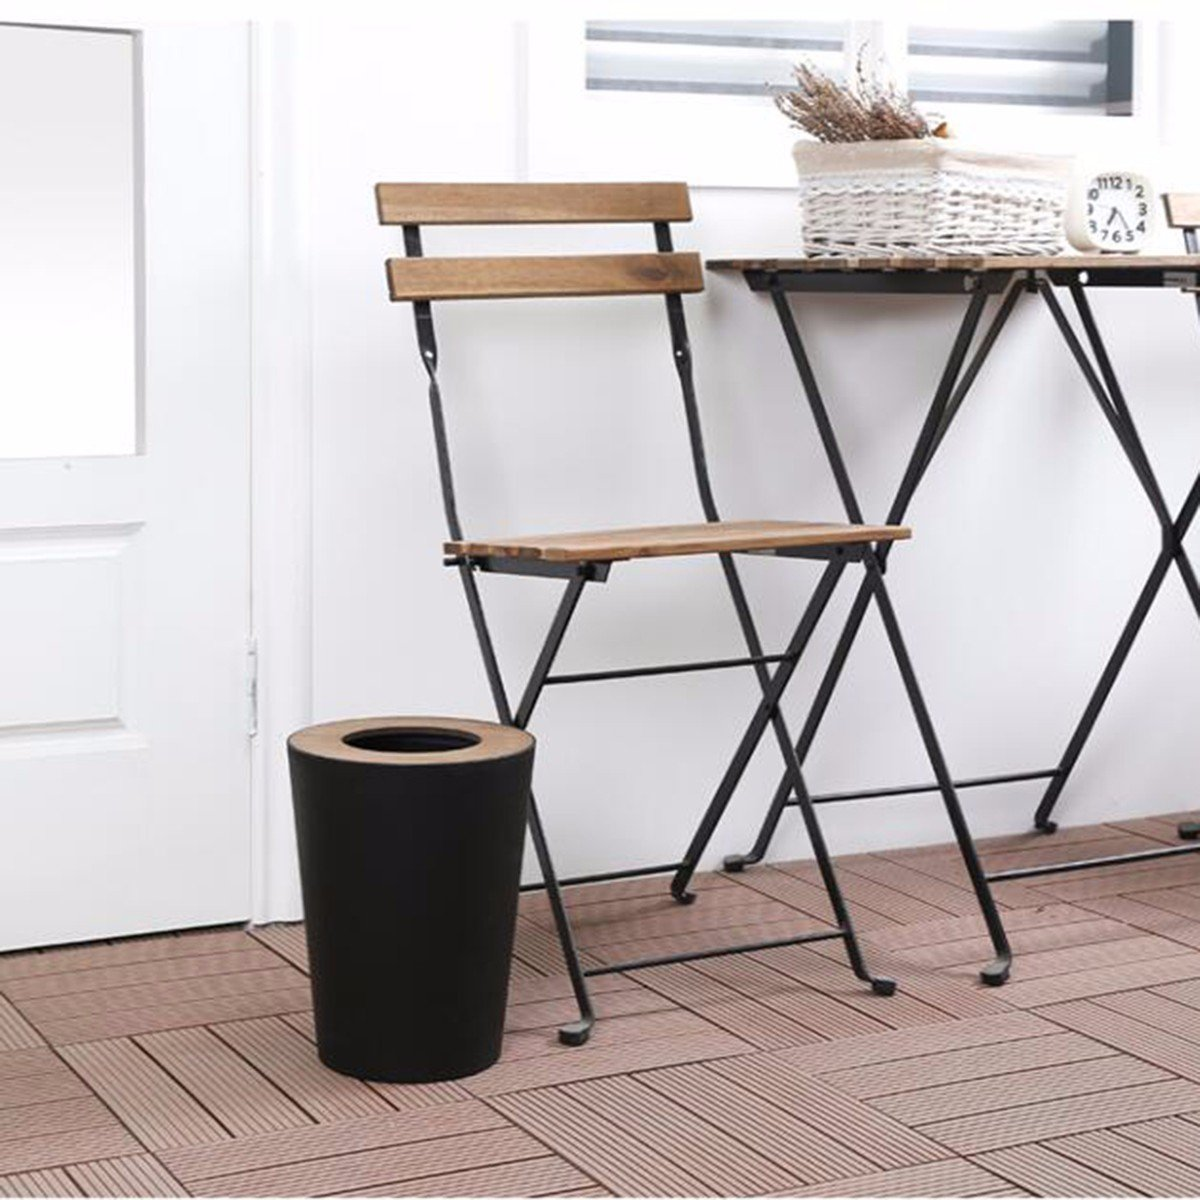 TDLC Creative North European household with cover wood covered the living room Bathroom kitchen with minimalist cover Waste Basket basket, B by TDLC (Image #3)